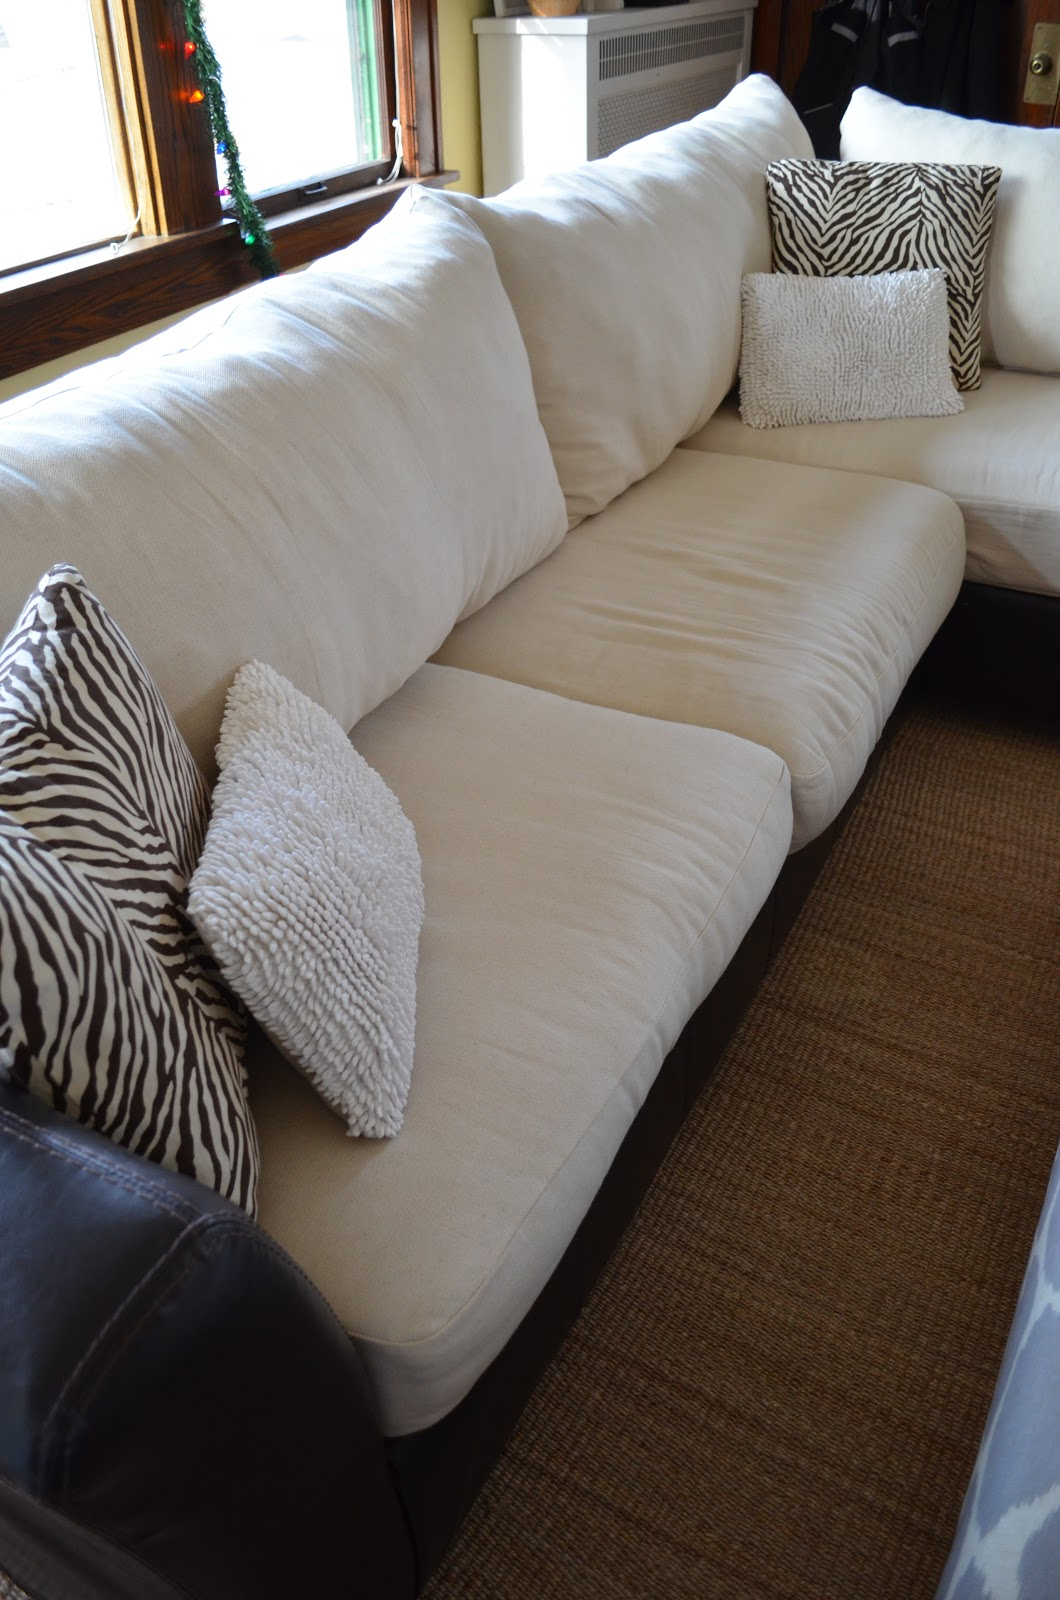 How to Fix A Sinking Couch | Cushion Stuffing | Restuffing Couch Cushions